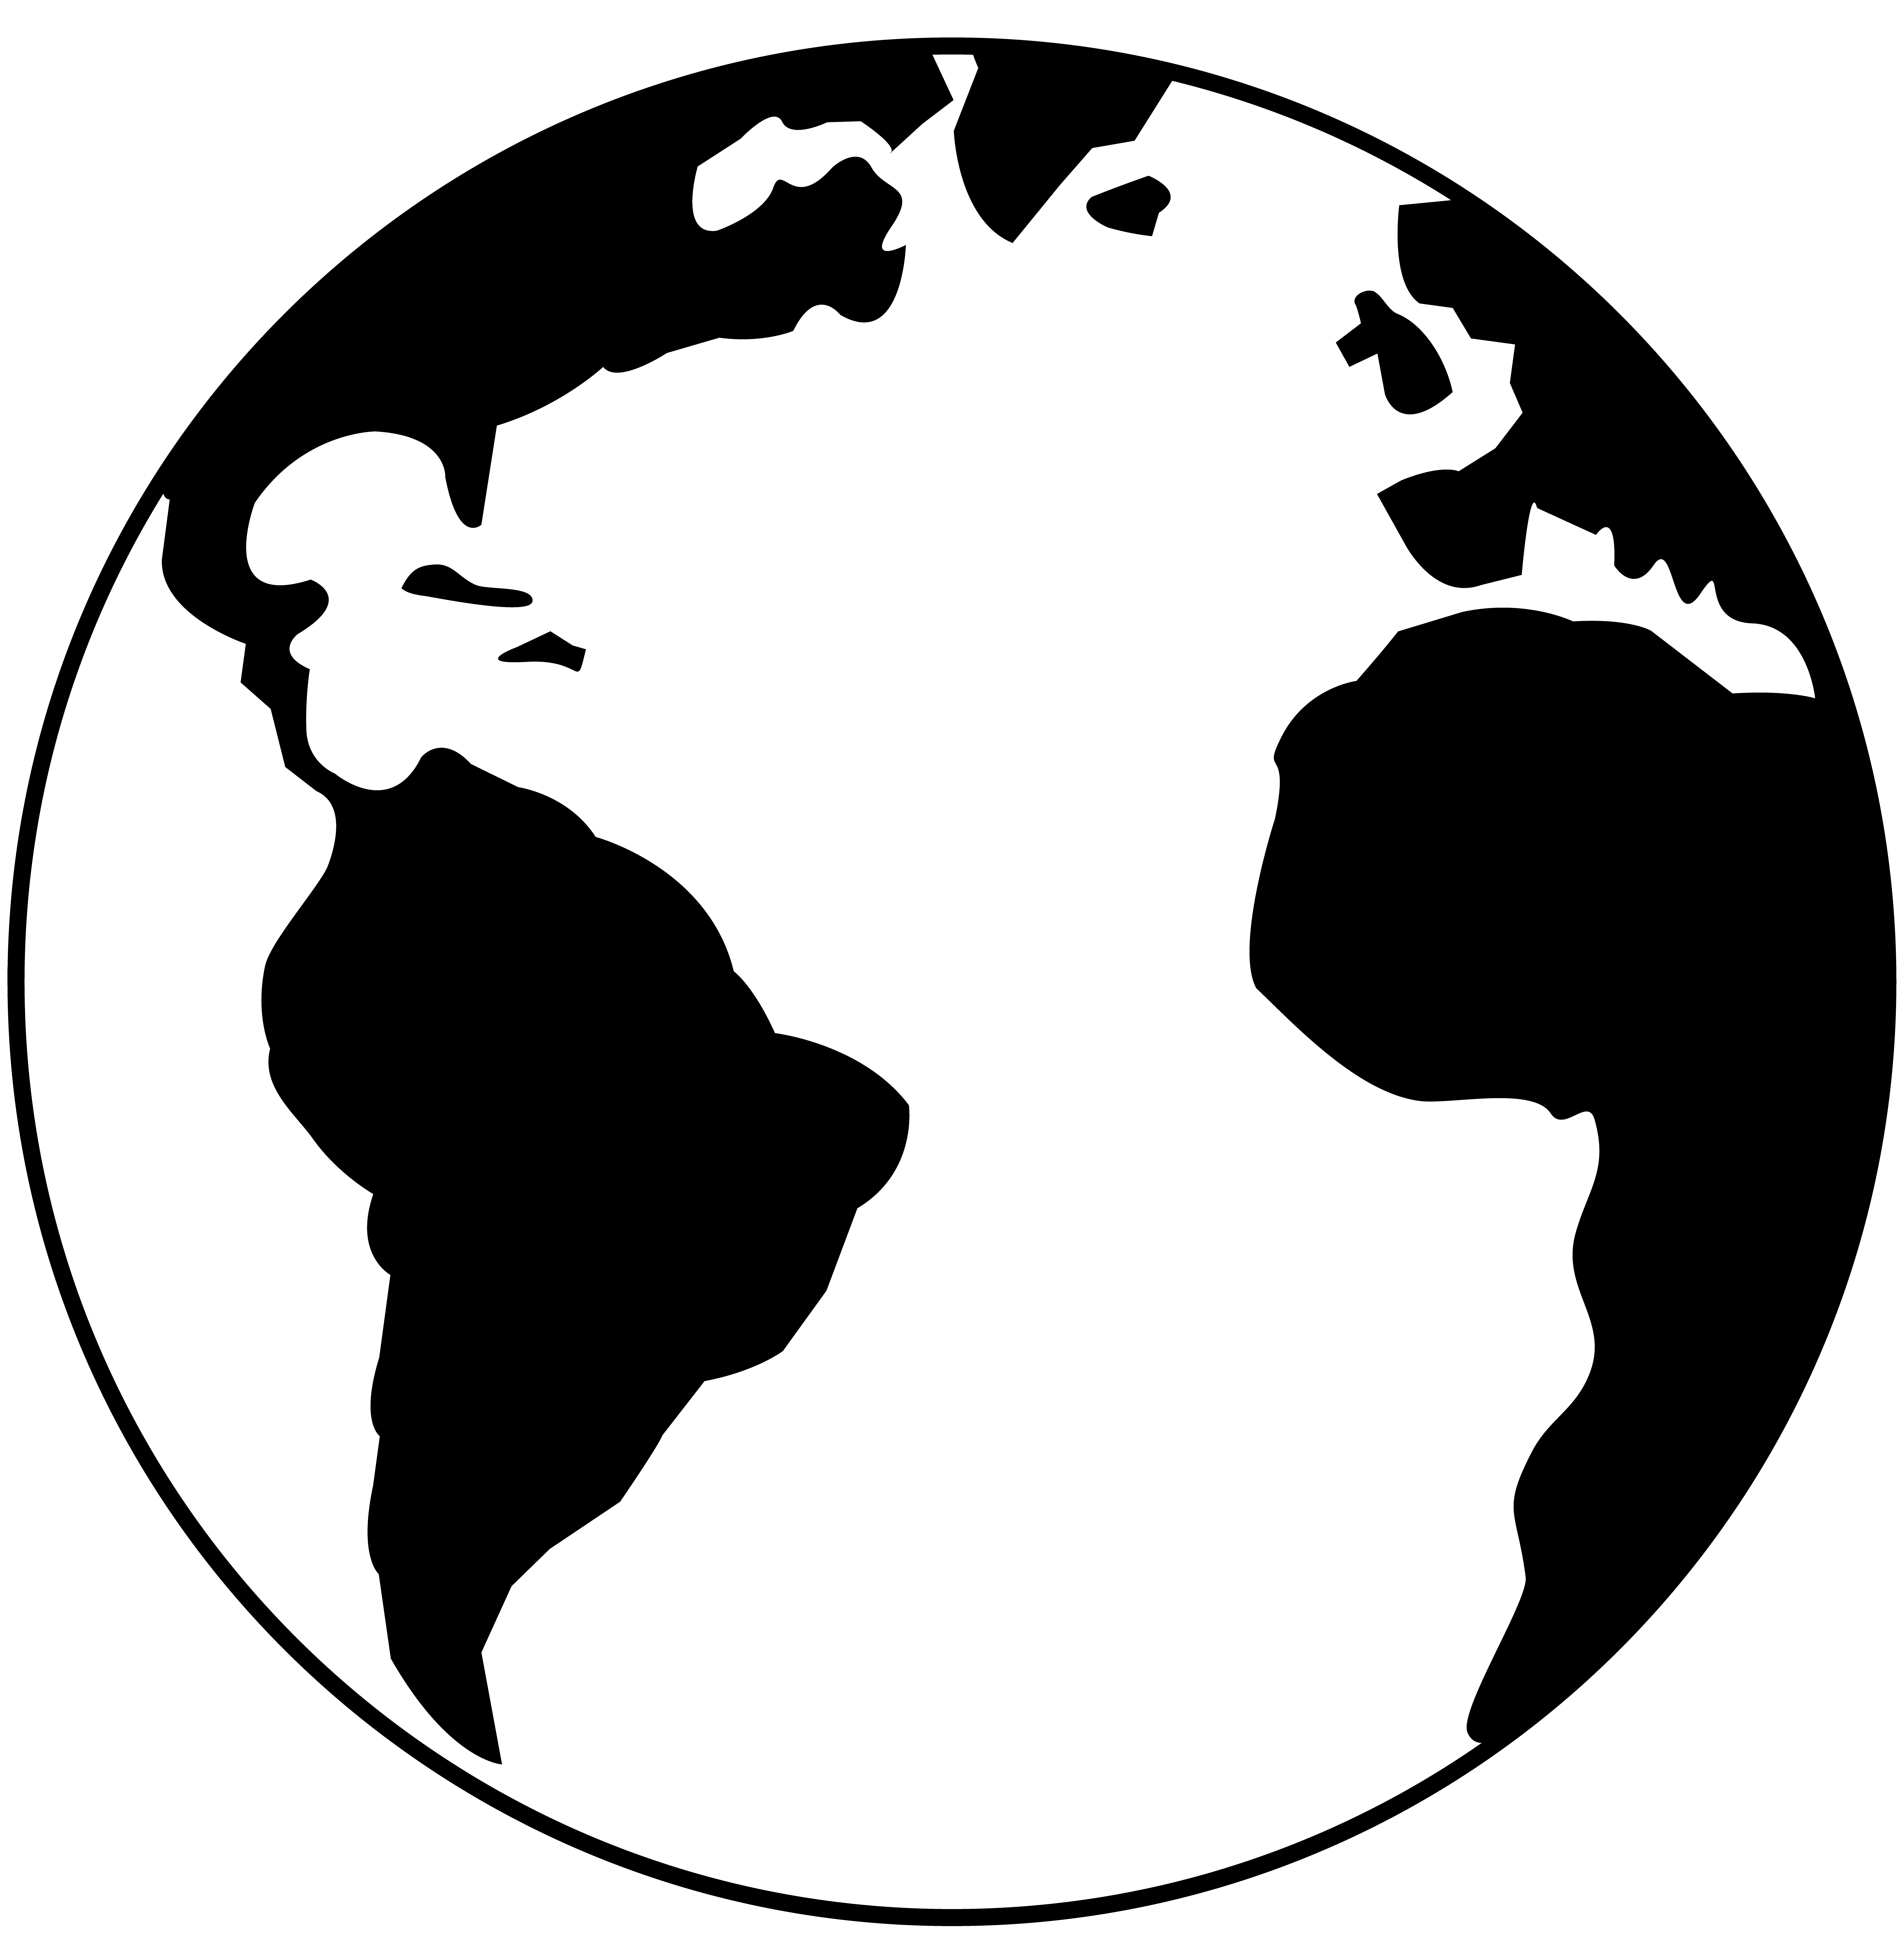 Map of earth clipart black and white png black and white library Free Earth Black And White, Download Free Clip Art, Free Clip Art on ... png black and white library